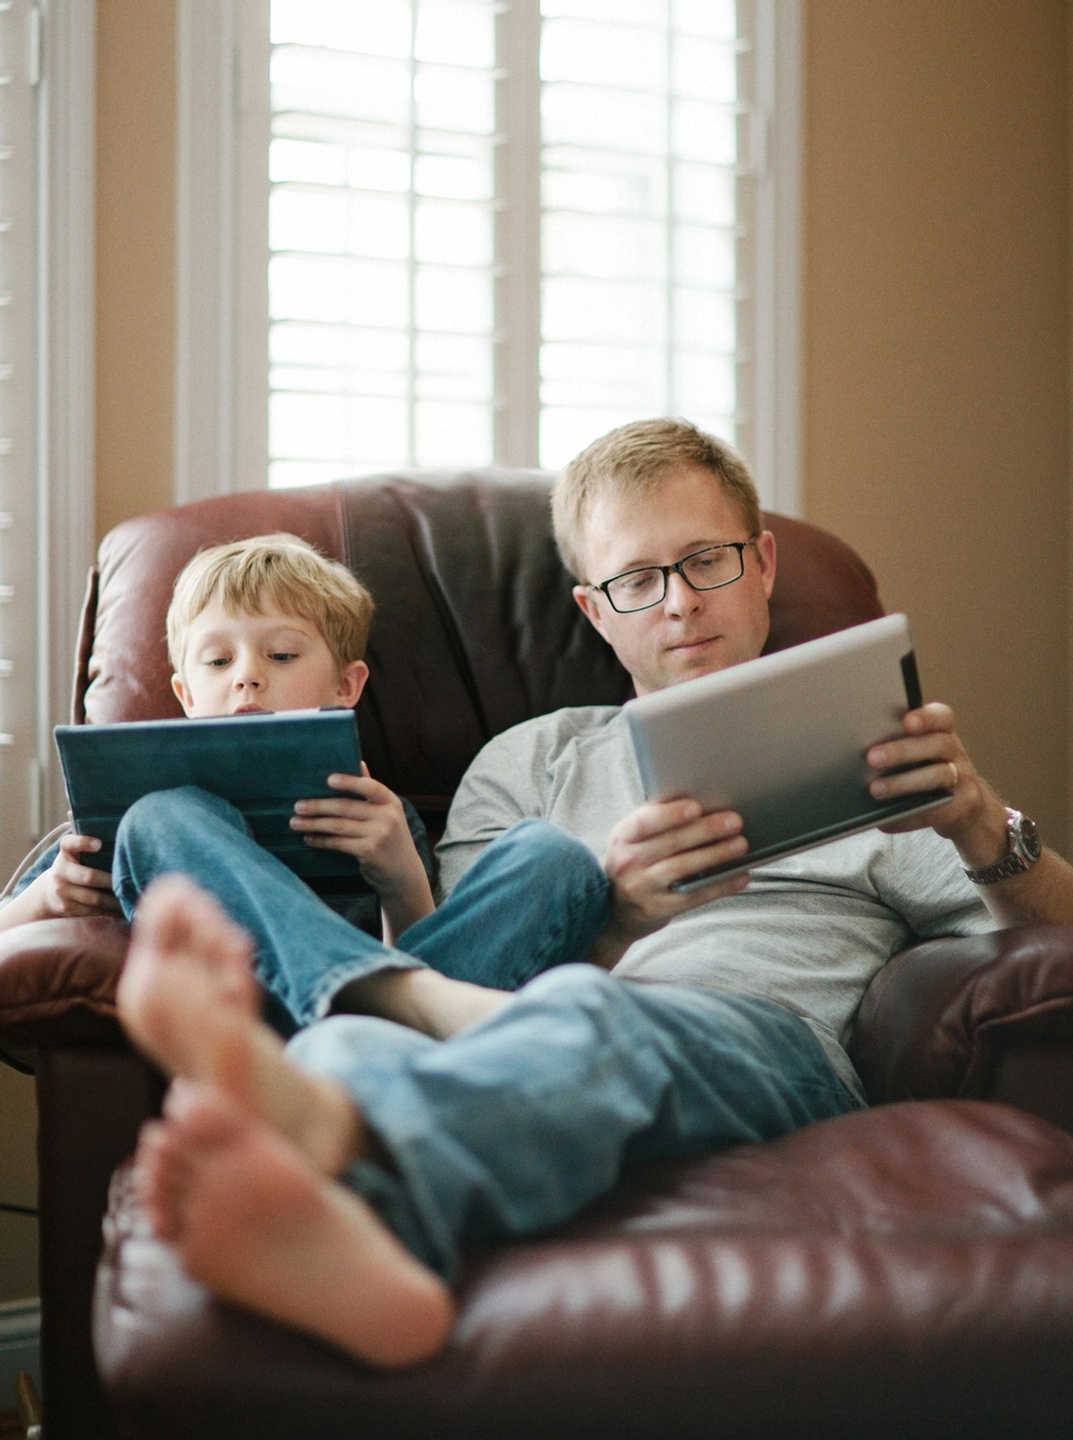 Father and child sharing a chair while both looking at their own mobile devices